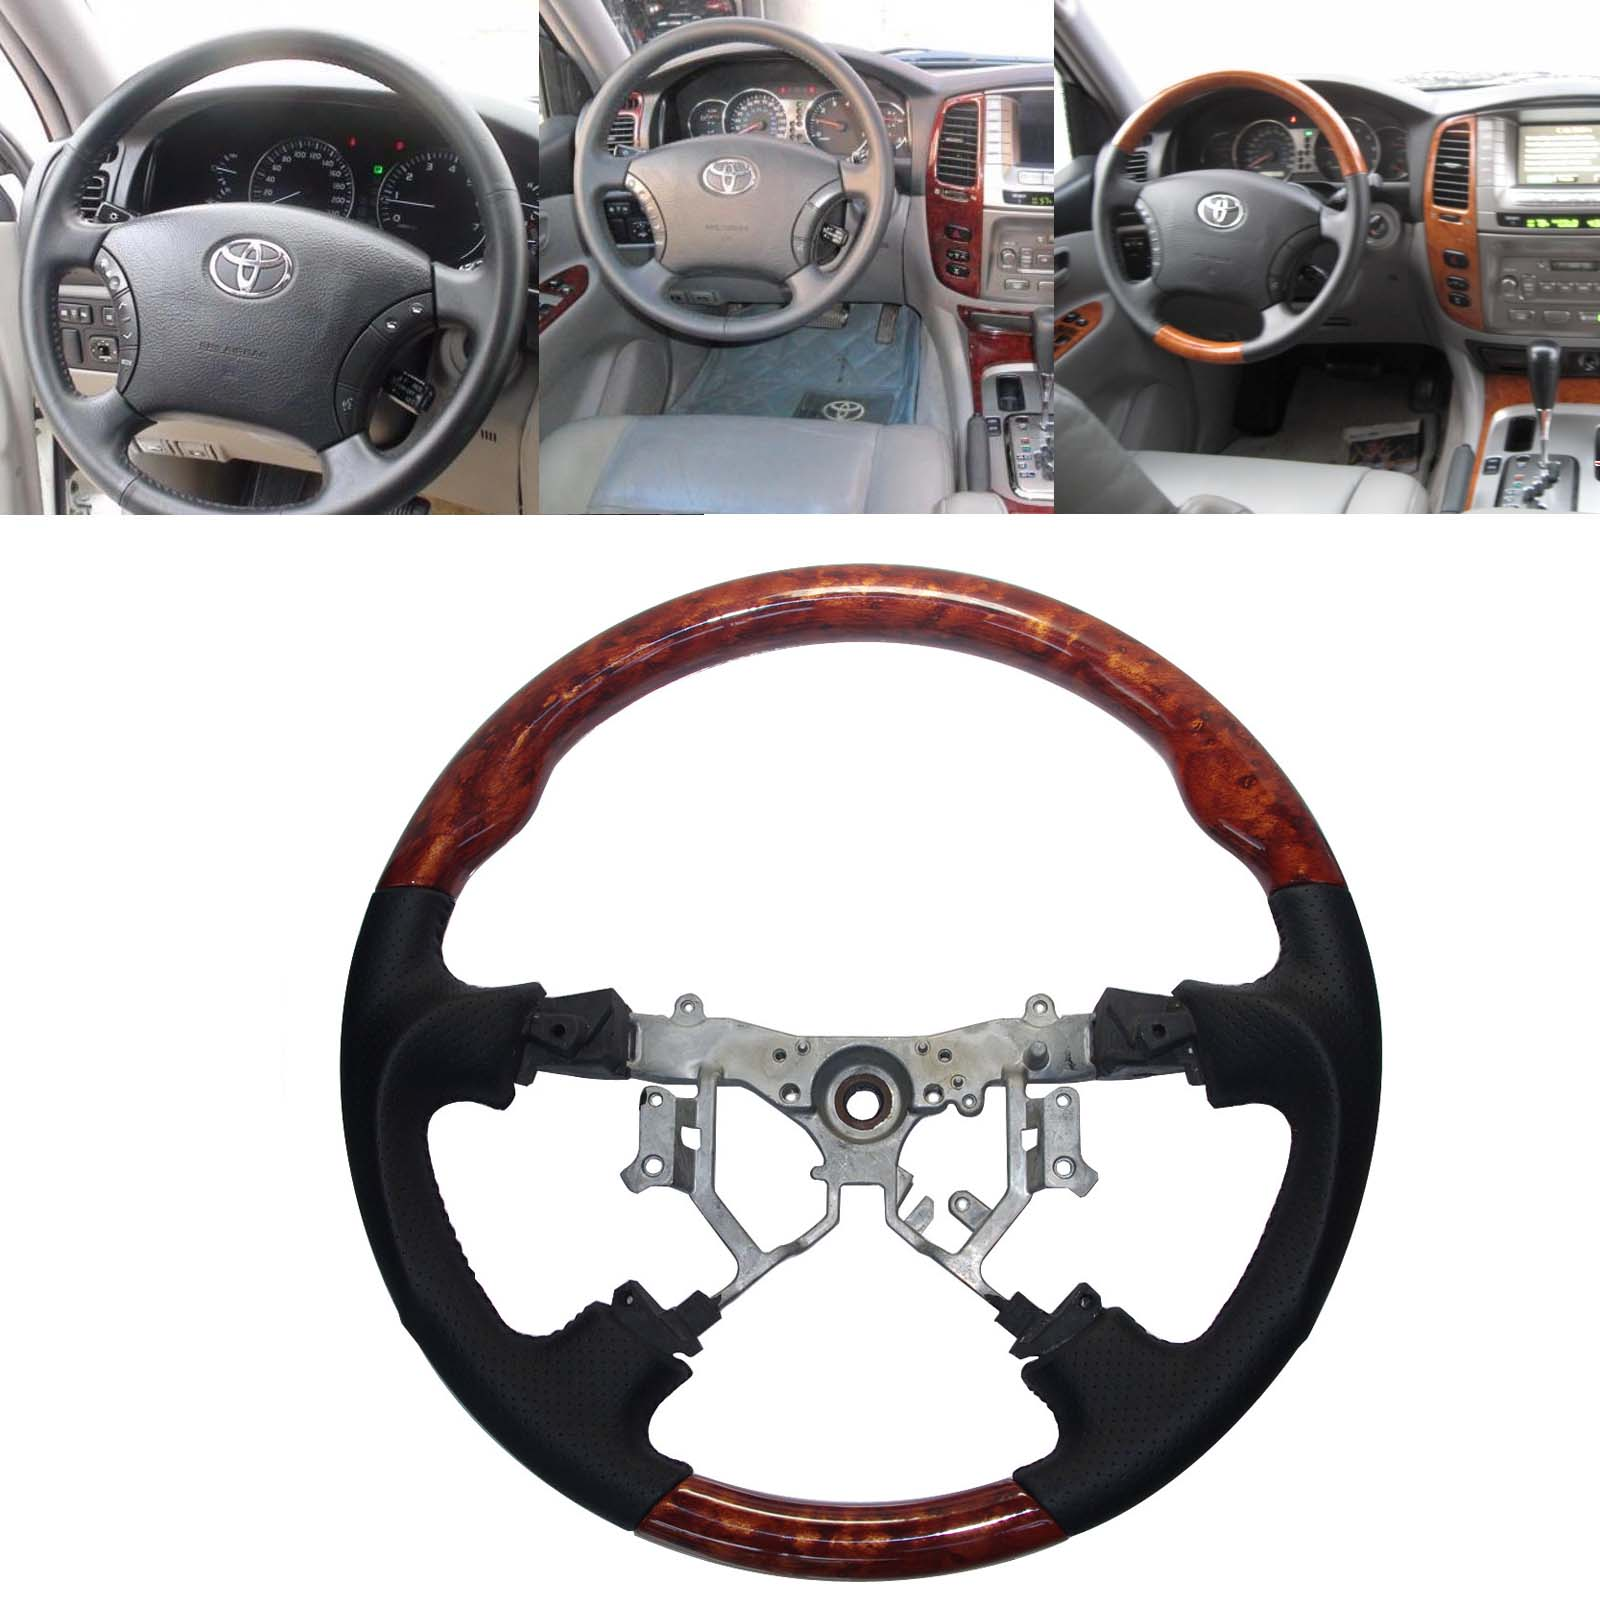 black leather wood steering wheel for 2003 2009 toyota 4runner sequoia sienna tundra camry previa tacoma hiace estima hilux [ 1600 x 1600 Pixel ]